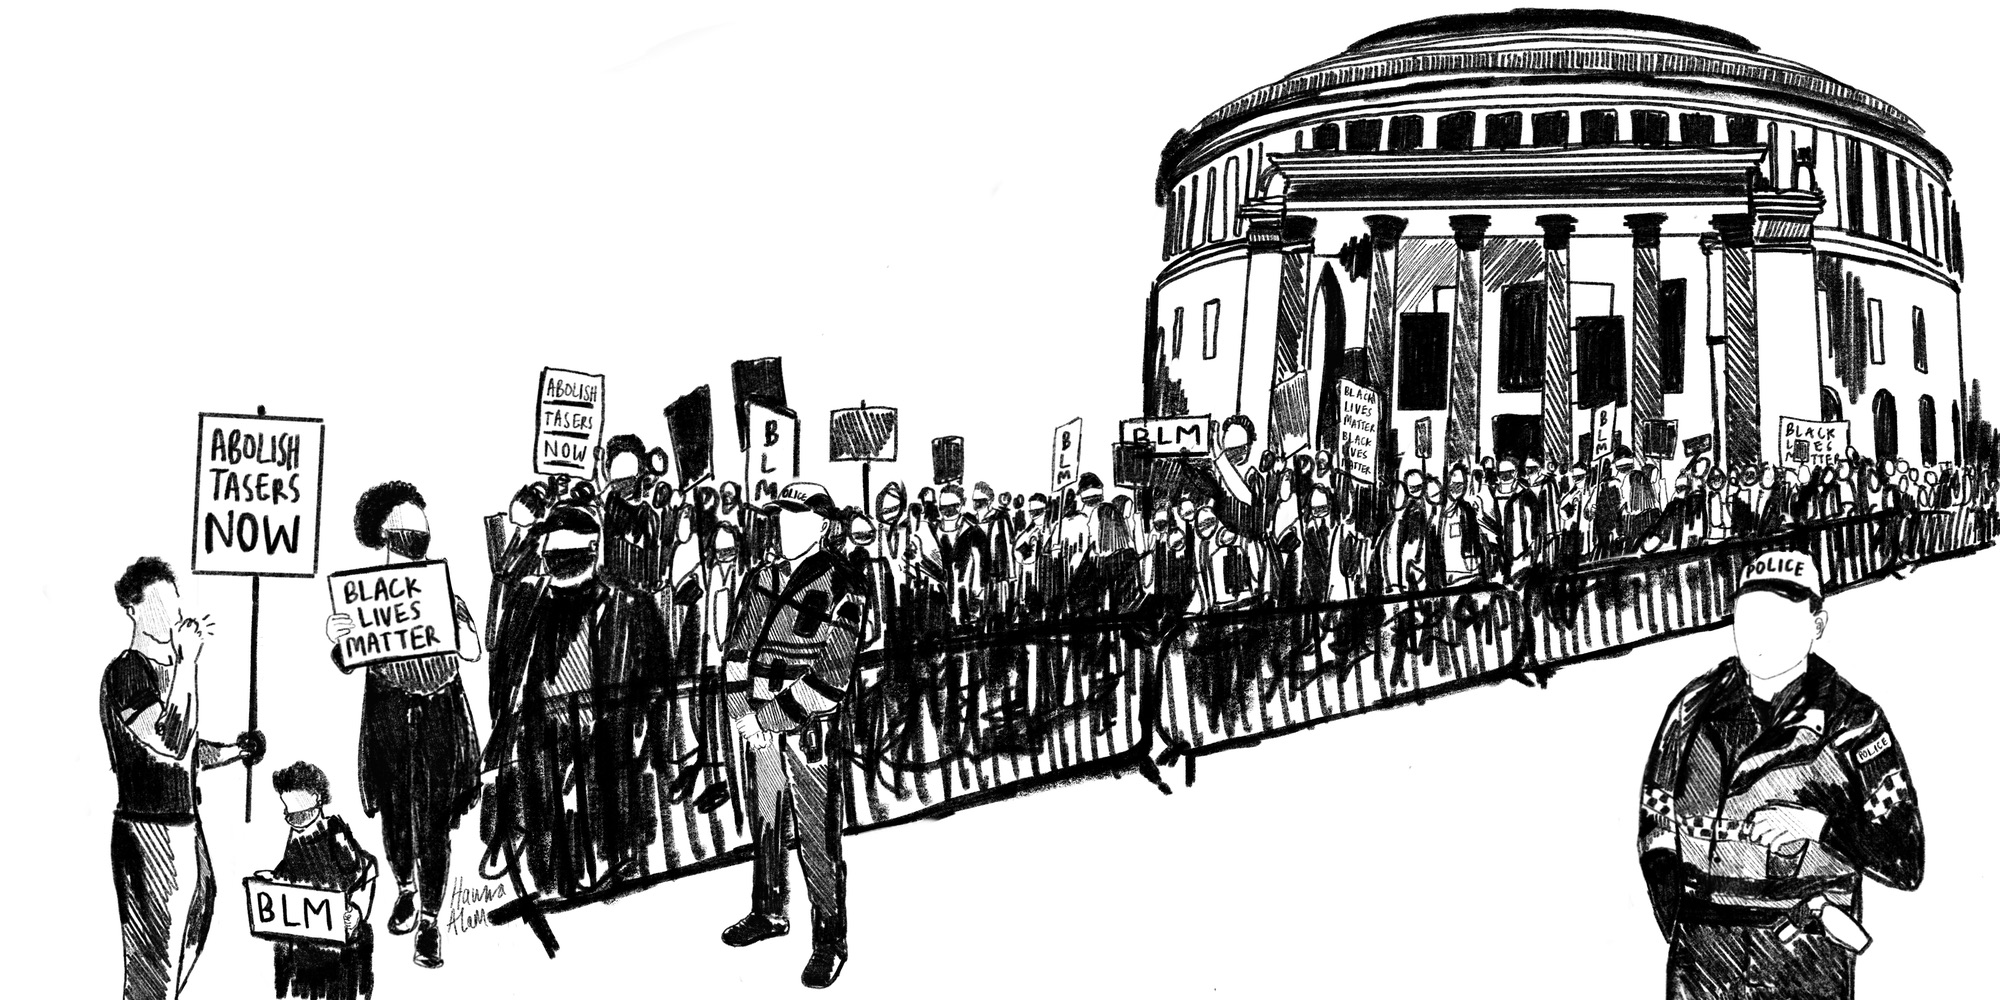 A black and white illustration of a protest held in front of a public building (Manchester Central Library pictured, but this could be any public building). Members of the public are holding signs, including signs reading 'Abolish Tasers Now' and 'Black Lives Matter'. In front of the fence a police officer stands with his arms held in front of them, a Taser visible on their person.